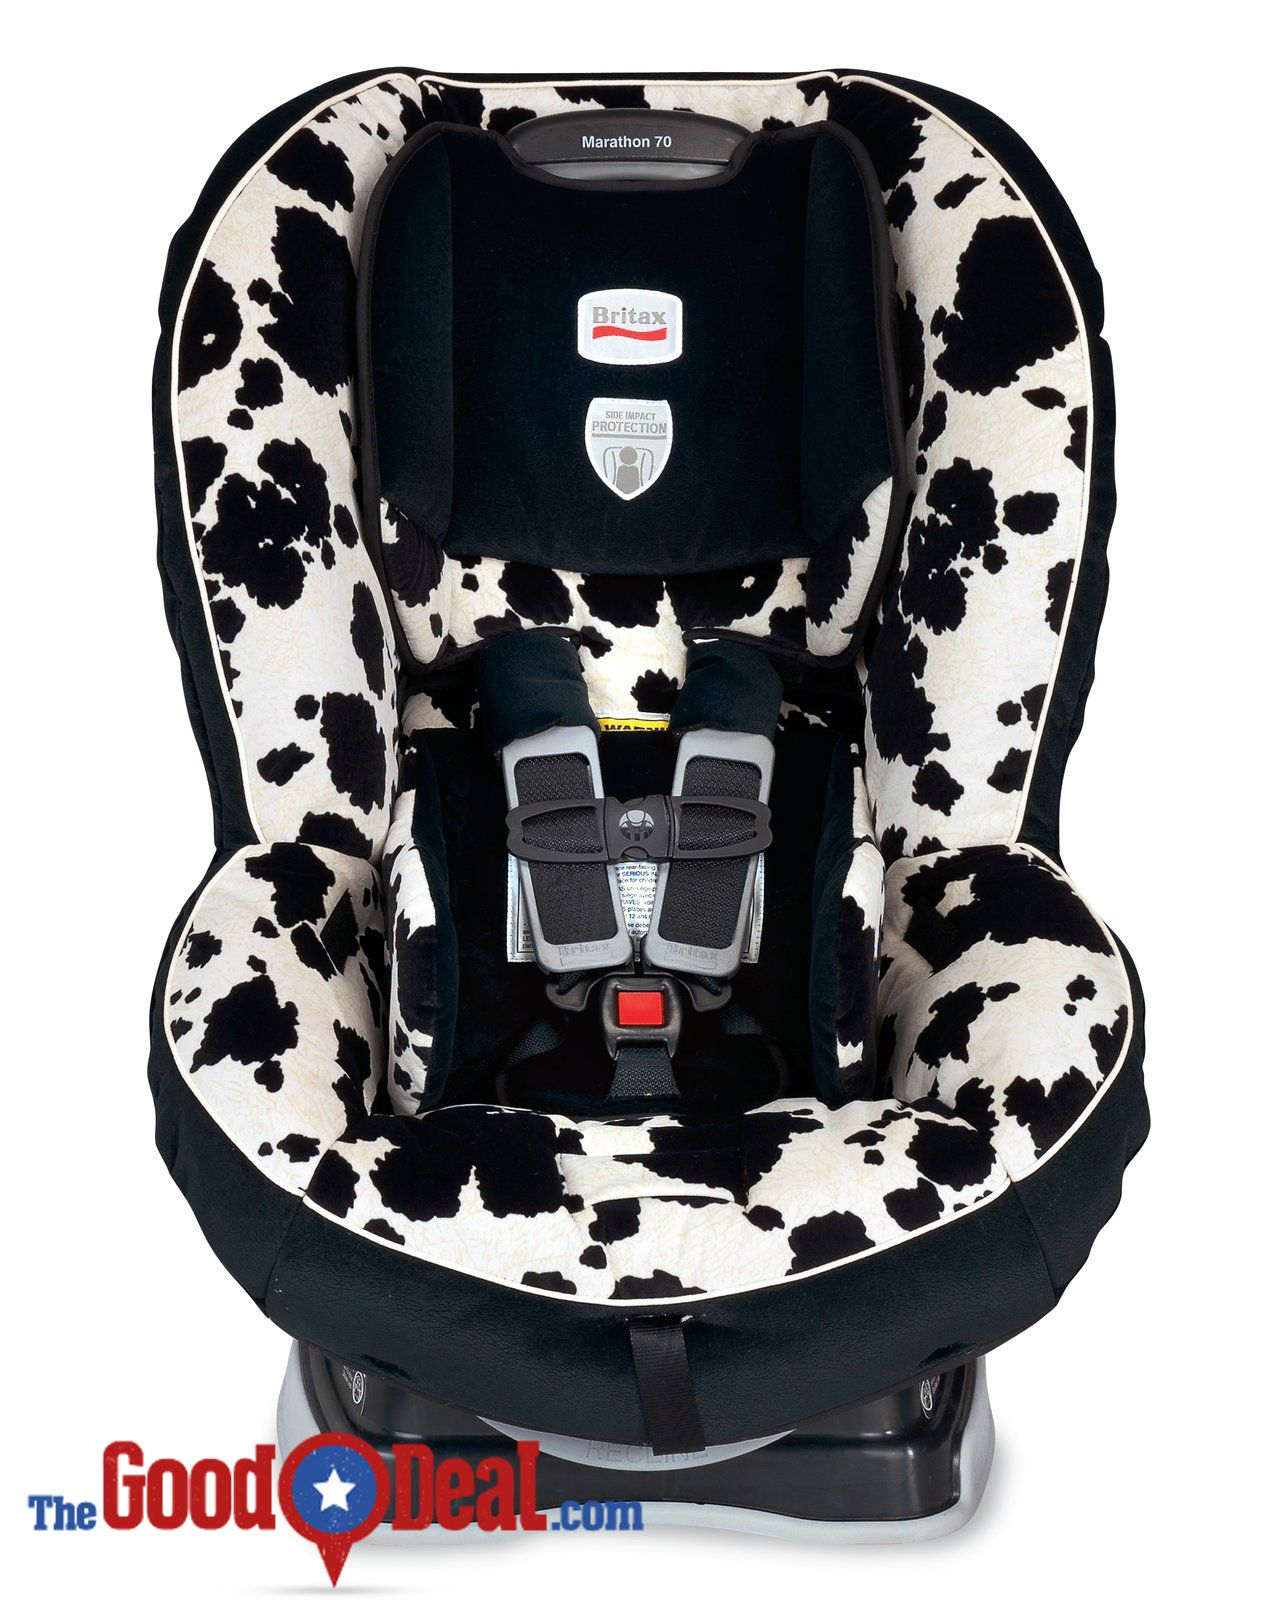 This Britax Marathon Cowmooflage Car Seat would certainly